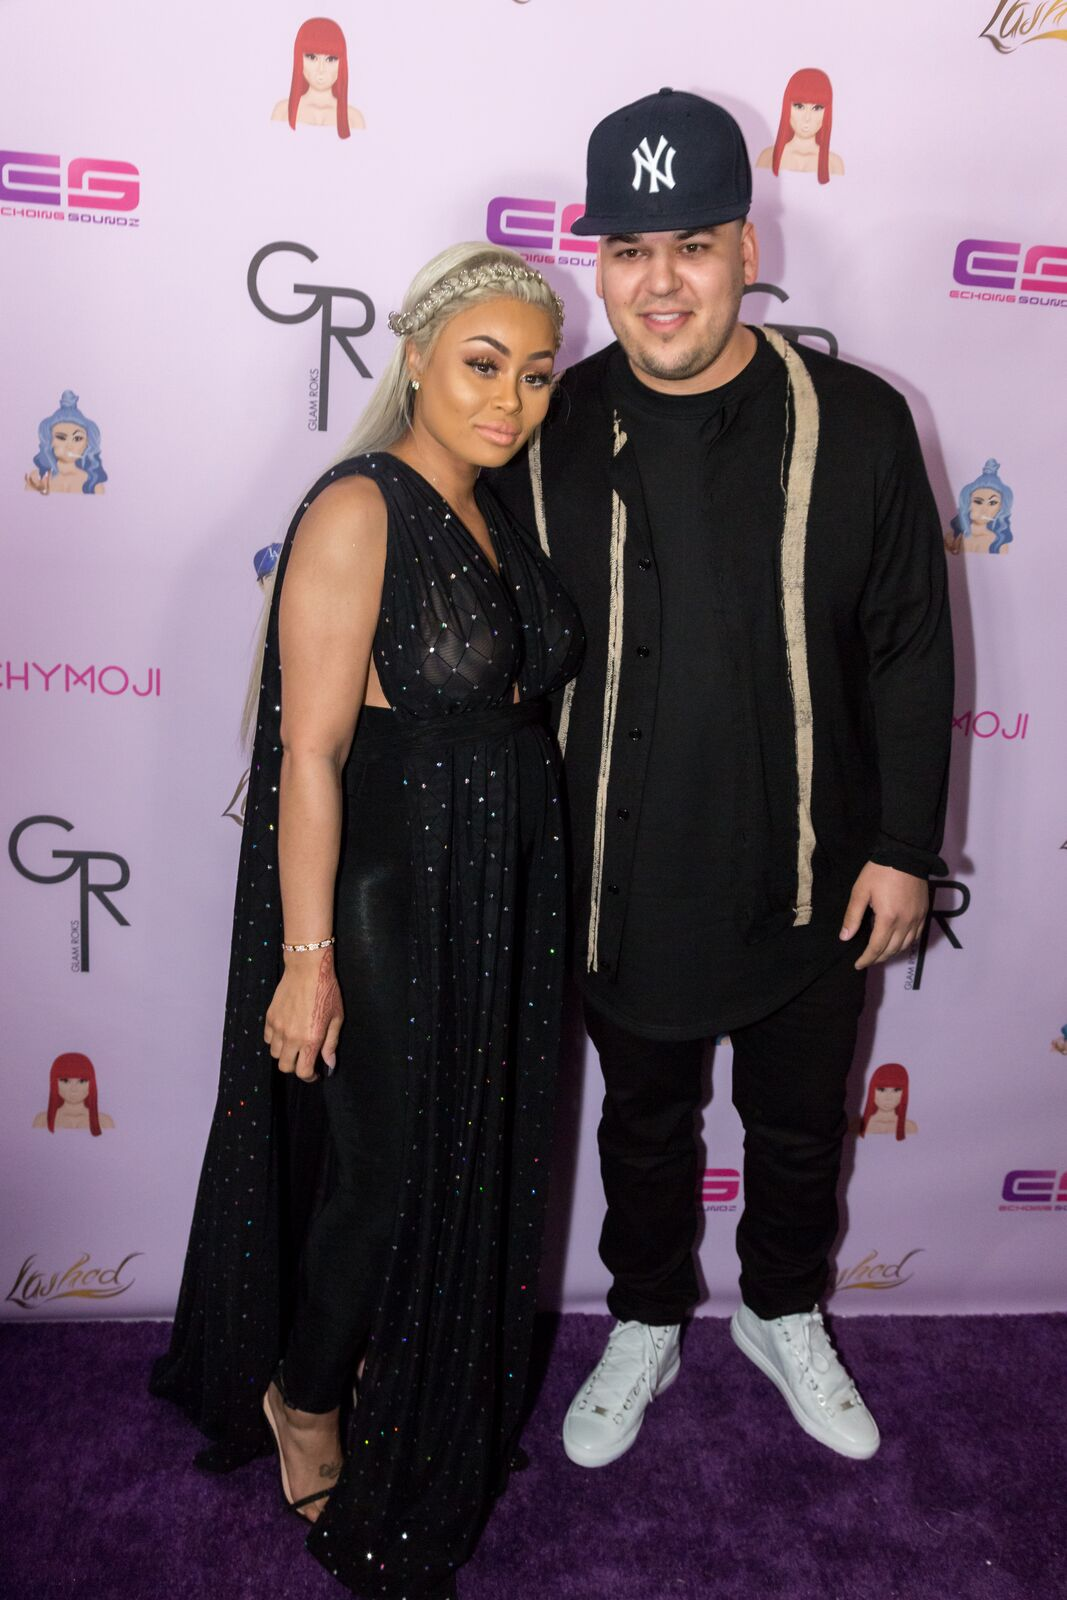 """Rob Kardashian and Blac Chyna arrive at her Blac Chyna Birthday Celebration And Unveiling Of Her """"Chymoji"""" Emoji Collection at the Hard Rock Cafe on May 10, 2016 